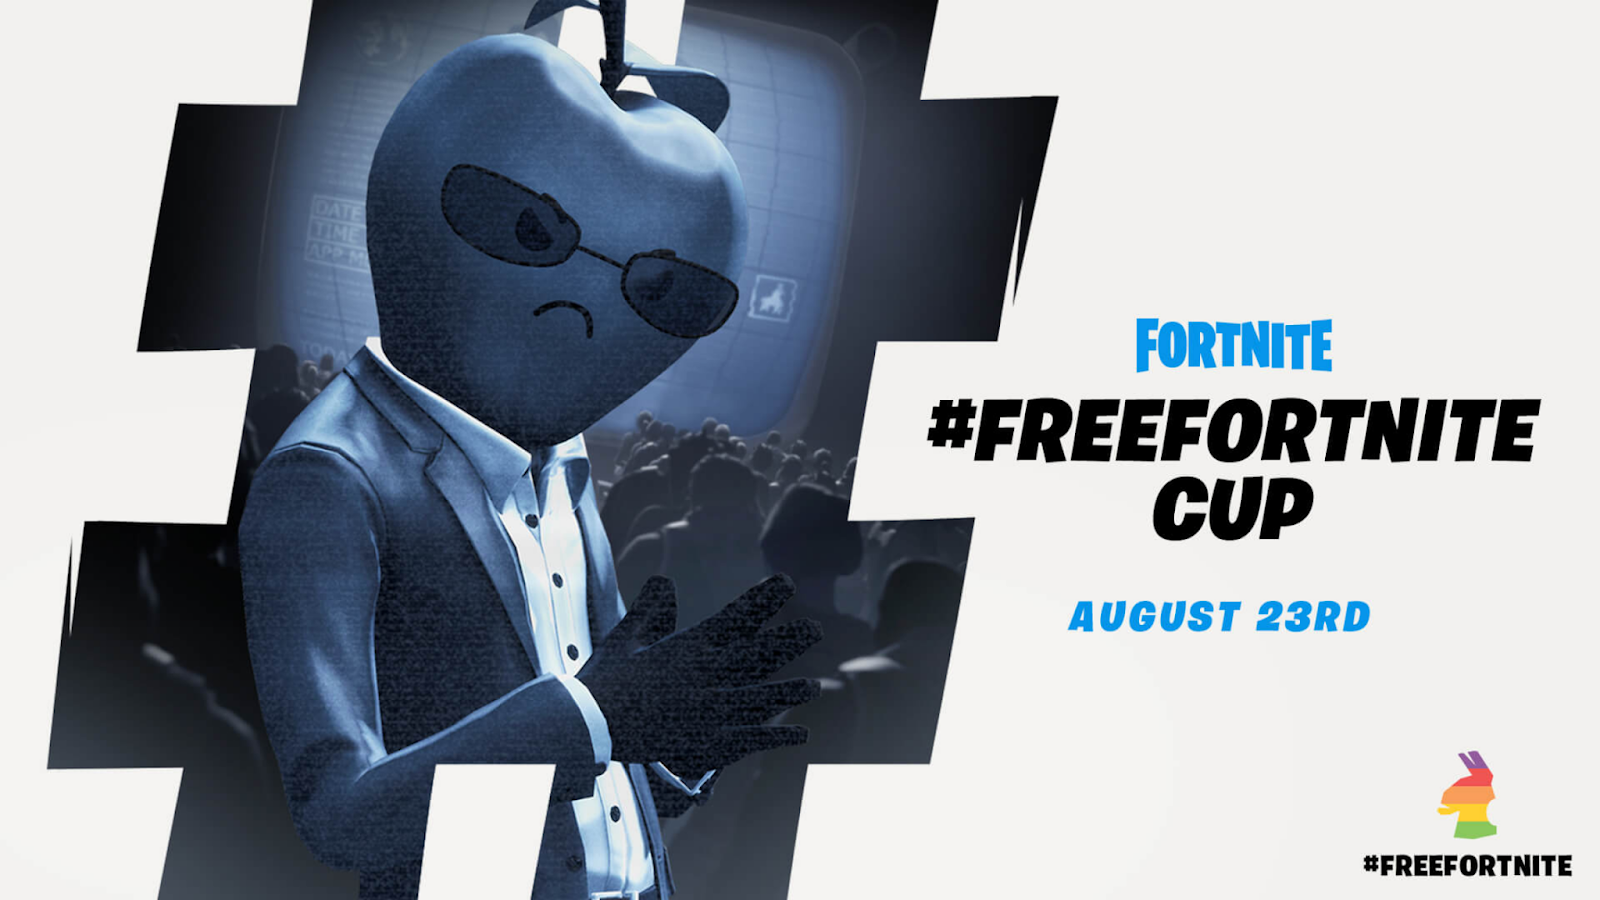 FreeFortnite Cup Event